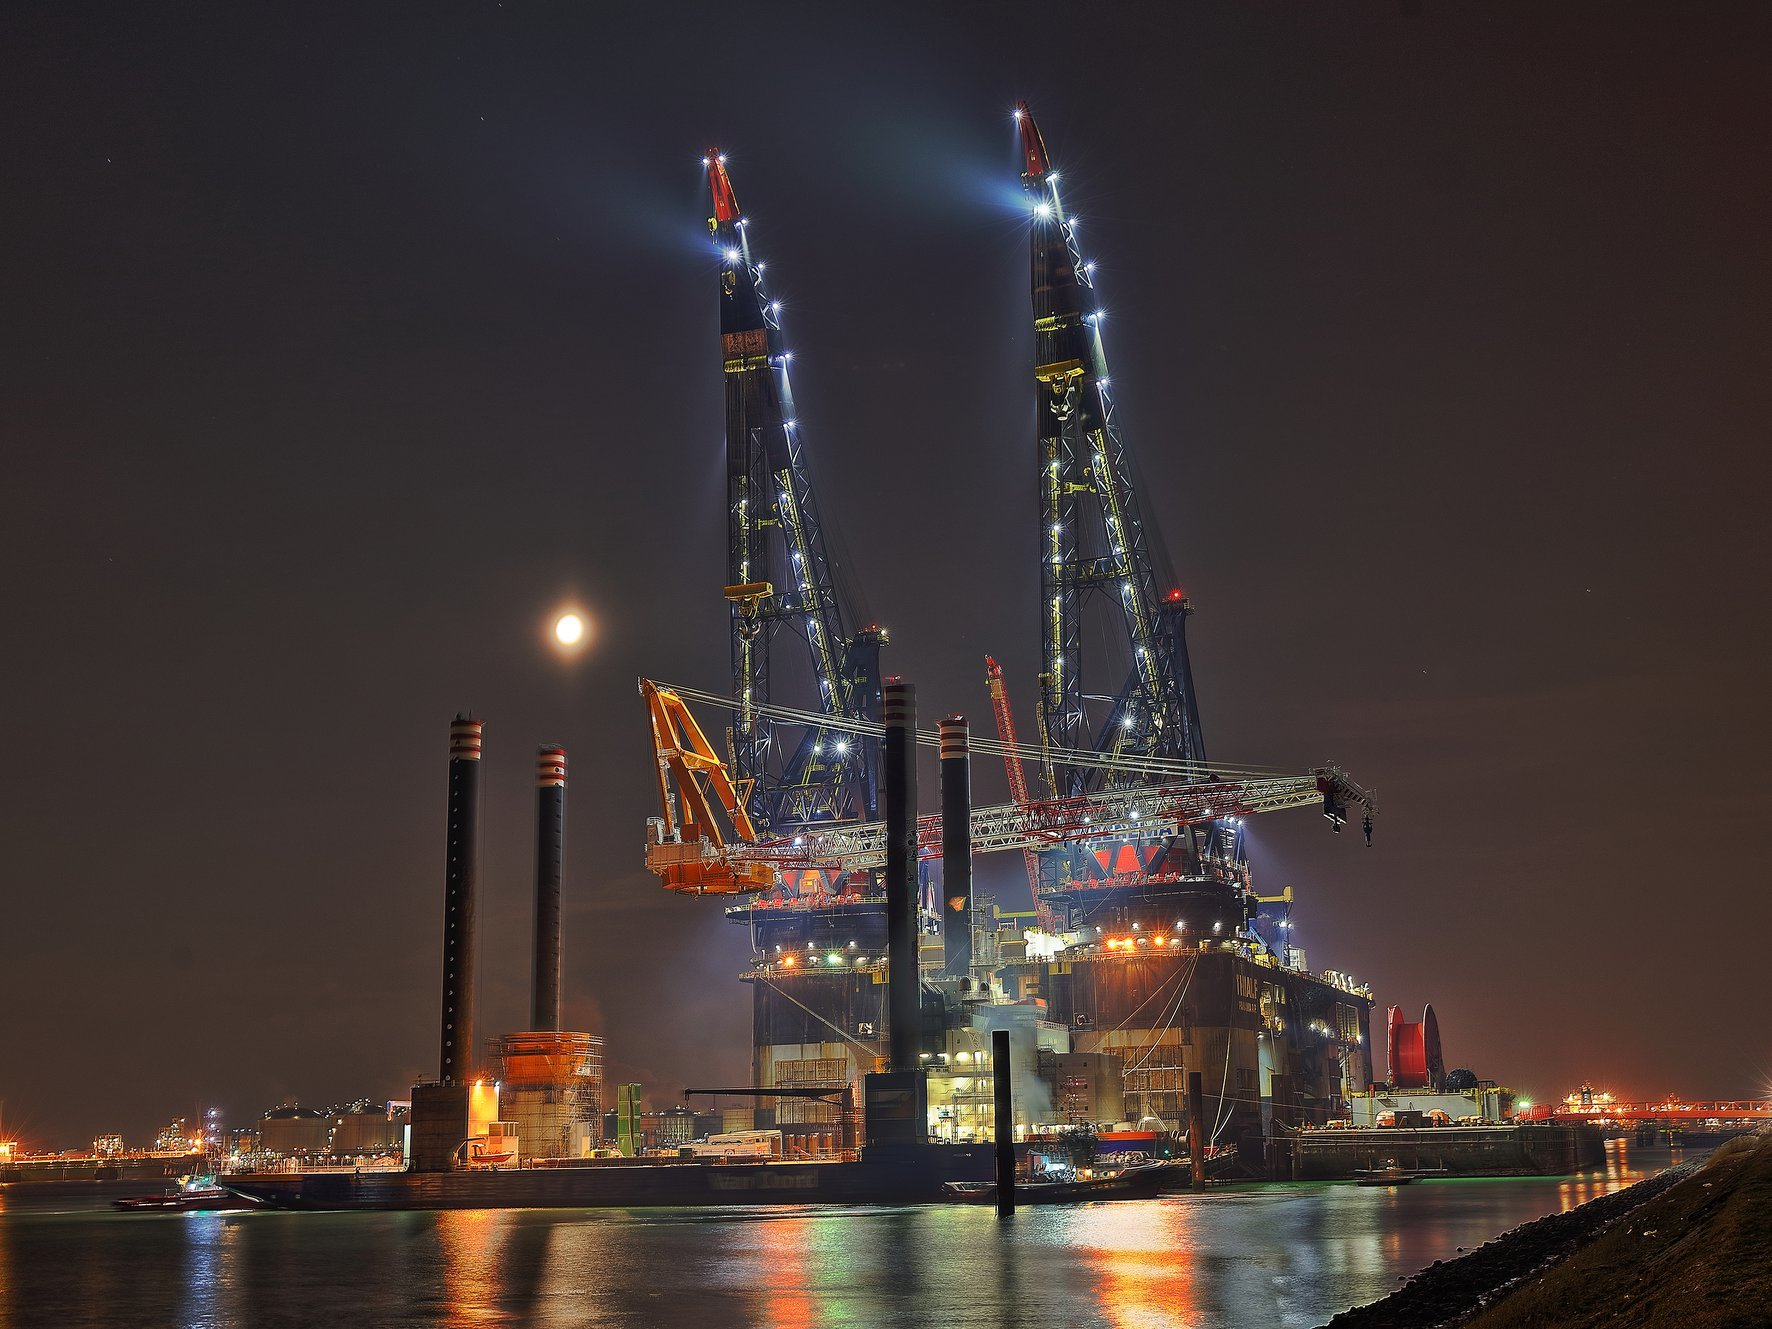 Huisman says its LEC for the Aeolus is the largest ever built